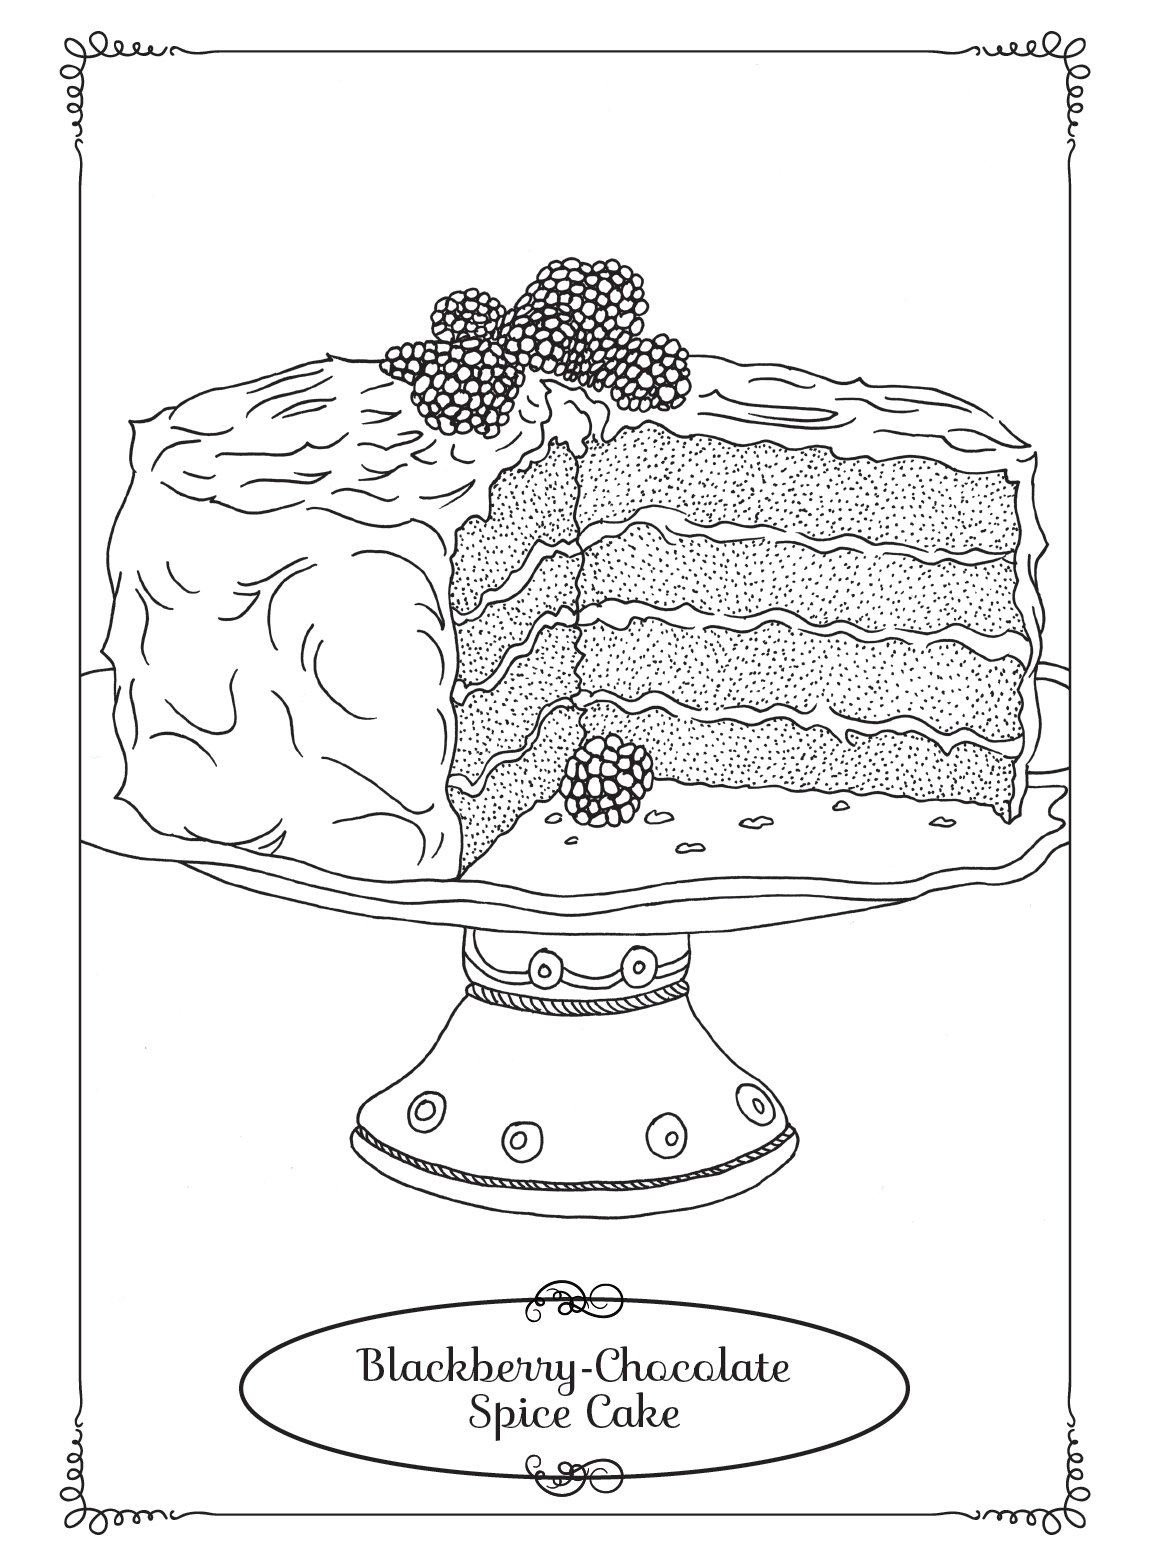 Greek house - Architecture and Living Coloring Pages for Adults ...   1566x1152